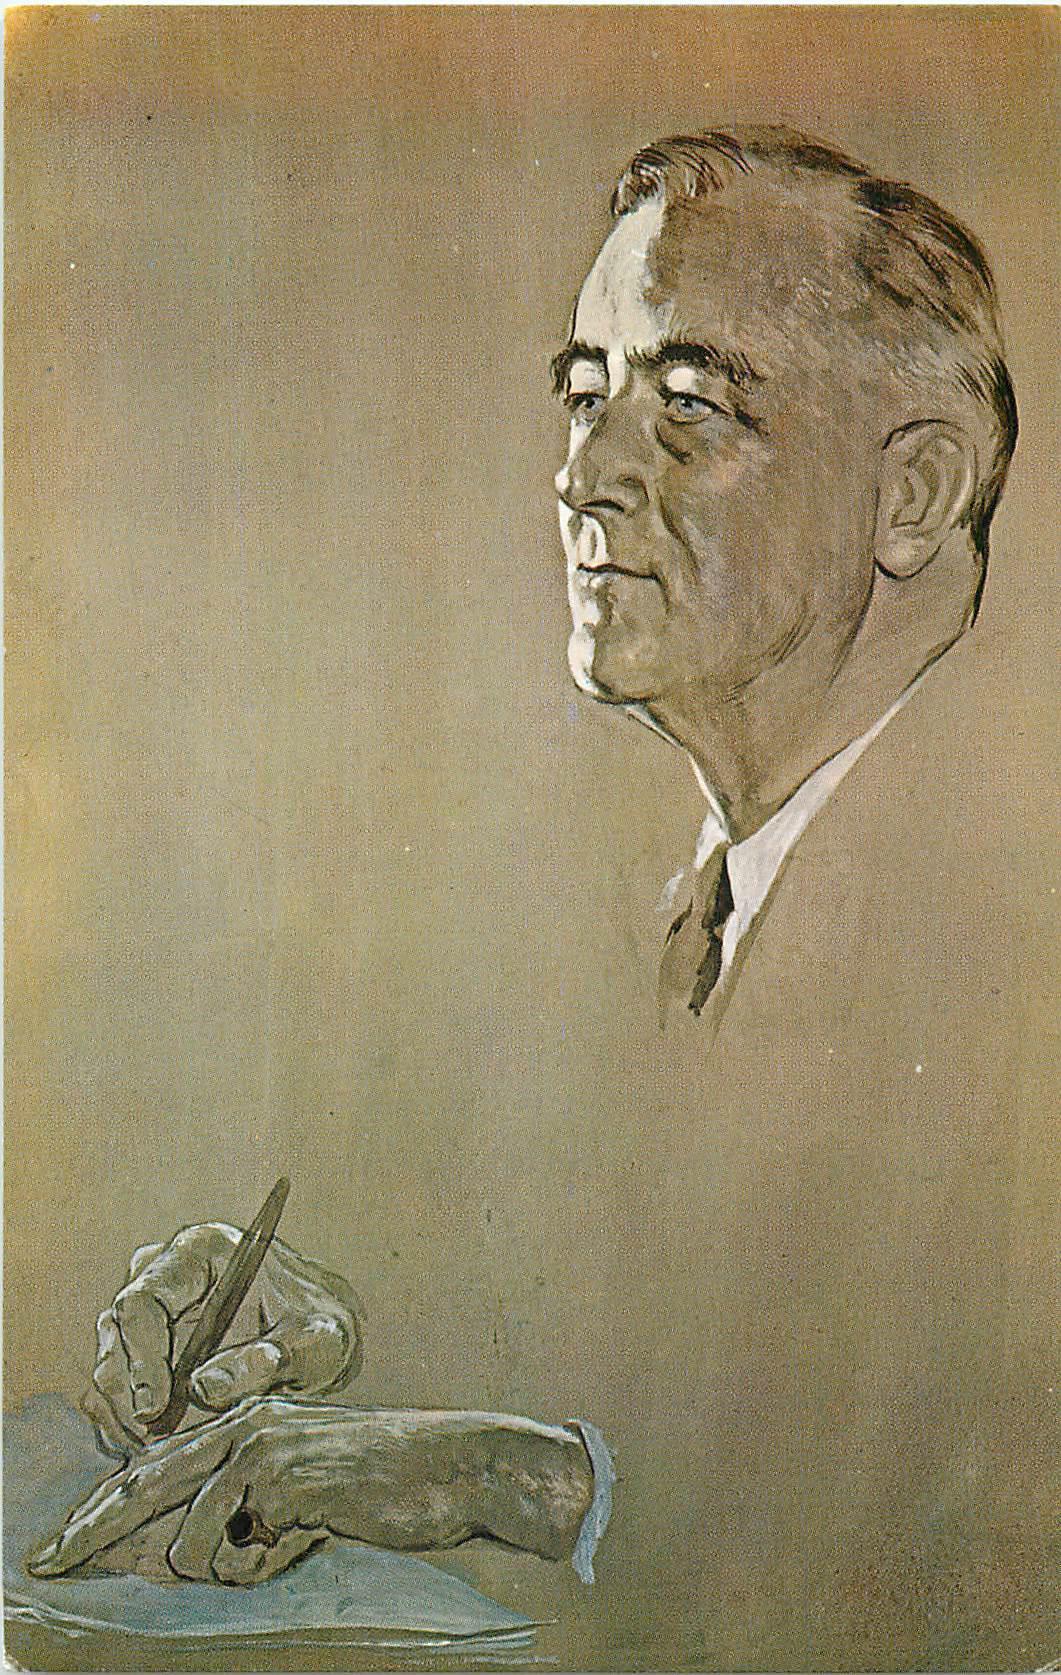 Watercolor Portrait of FDR - by Irena Wiley""